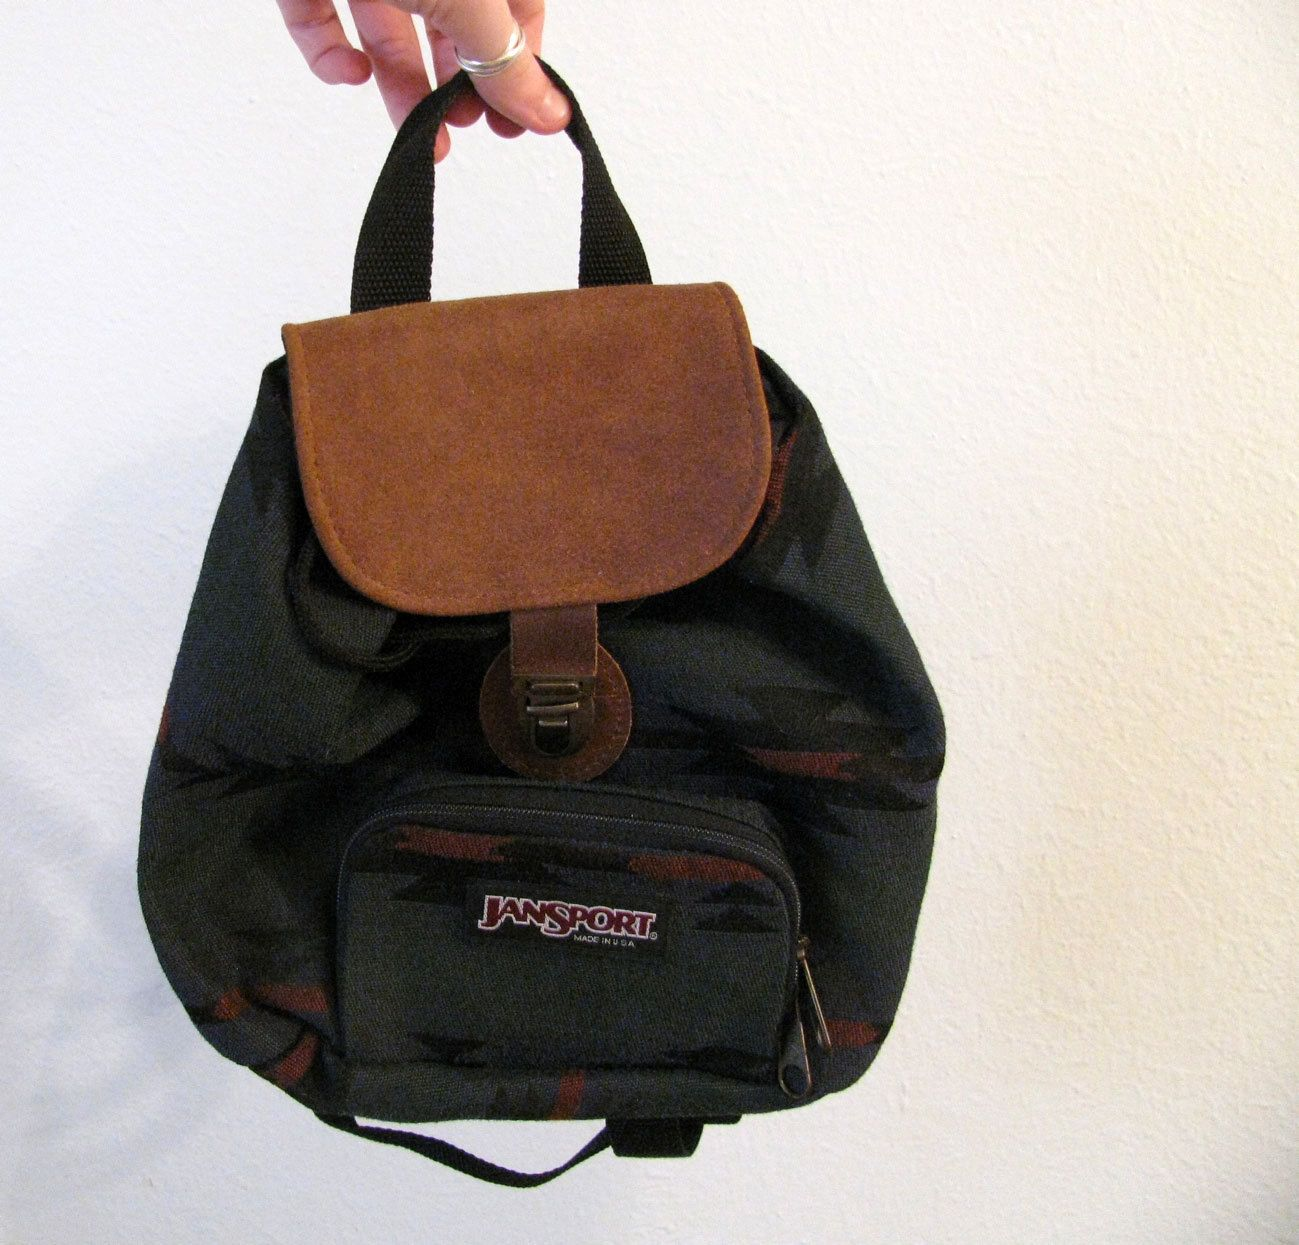 Vintage JANSPORT Mini Backpack Purse | Jansport, Mini backpack and ...